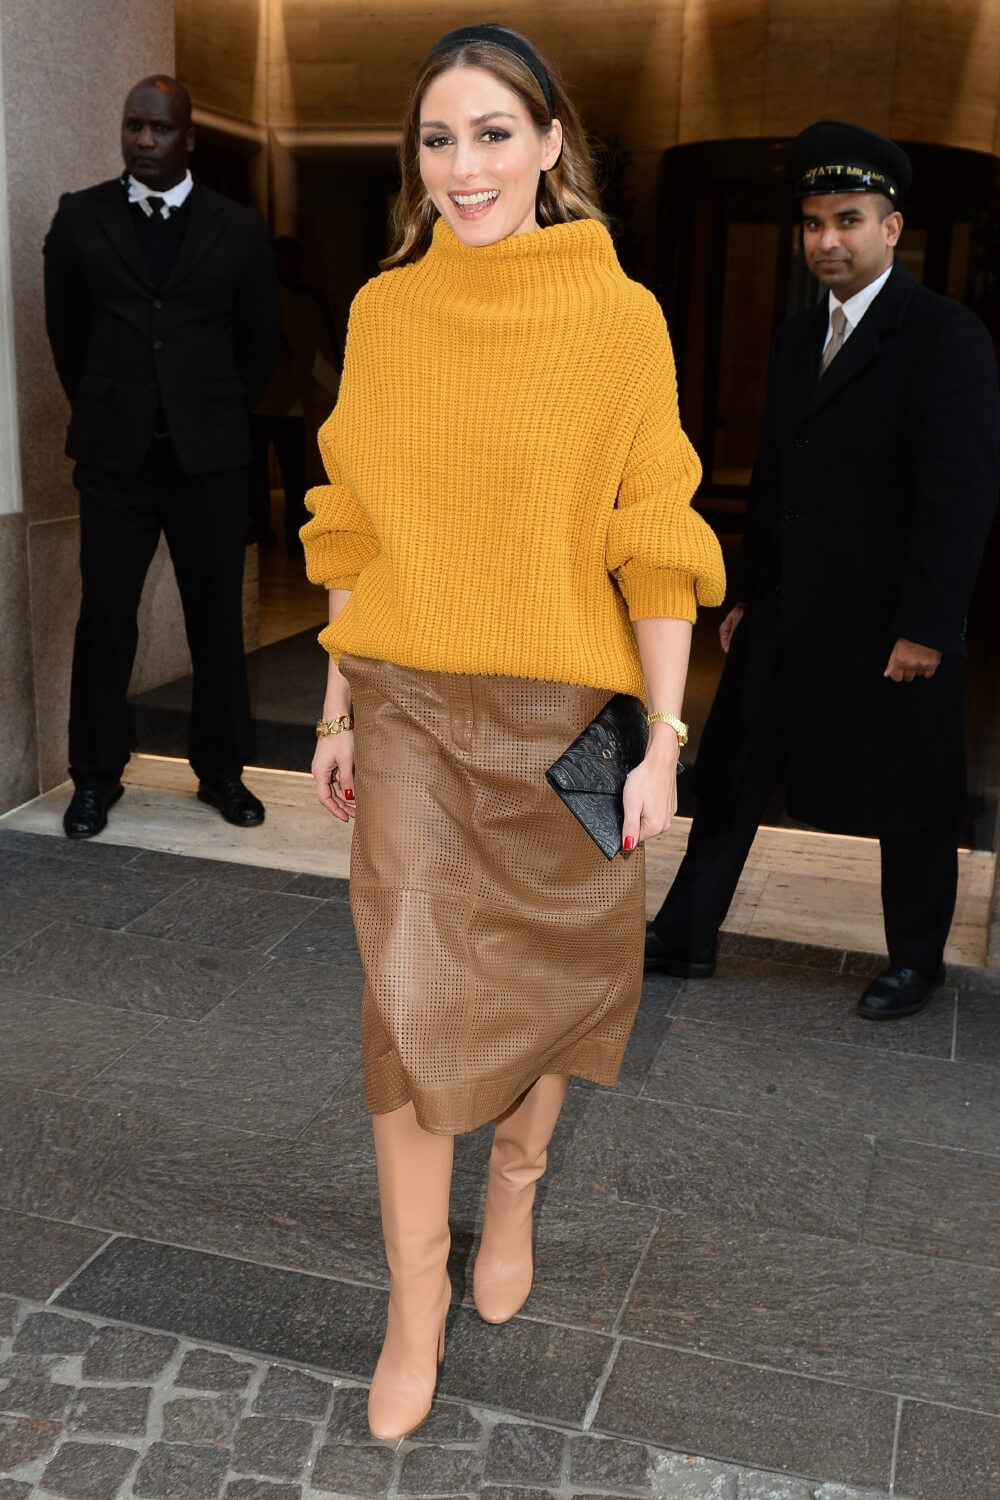 Olivia Palermo is seen leaving her hotel